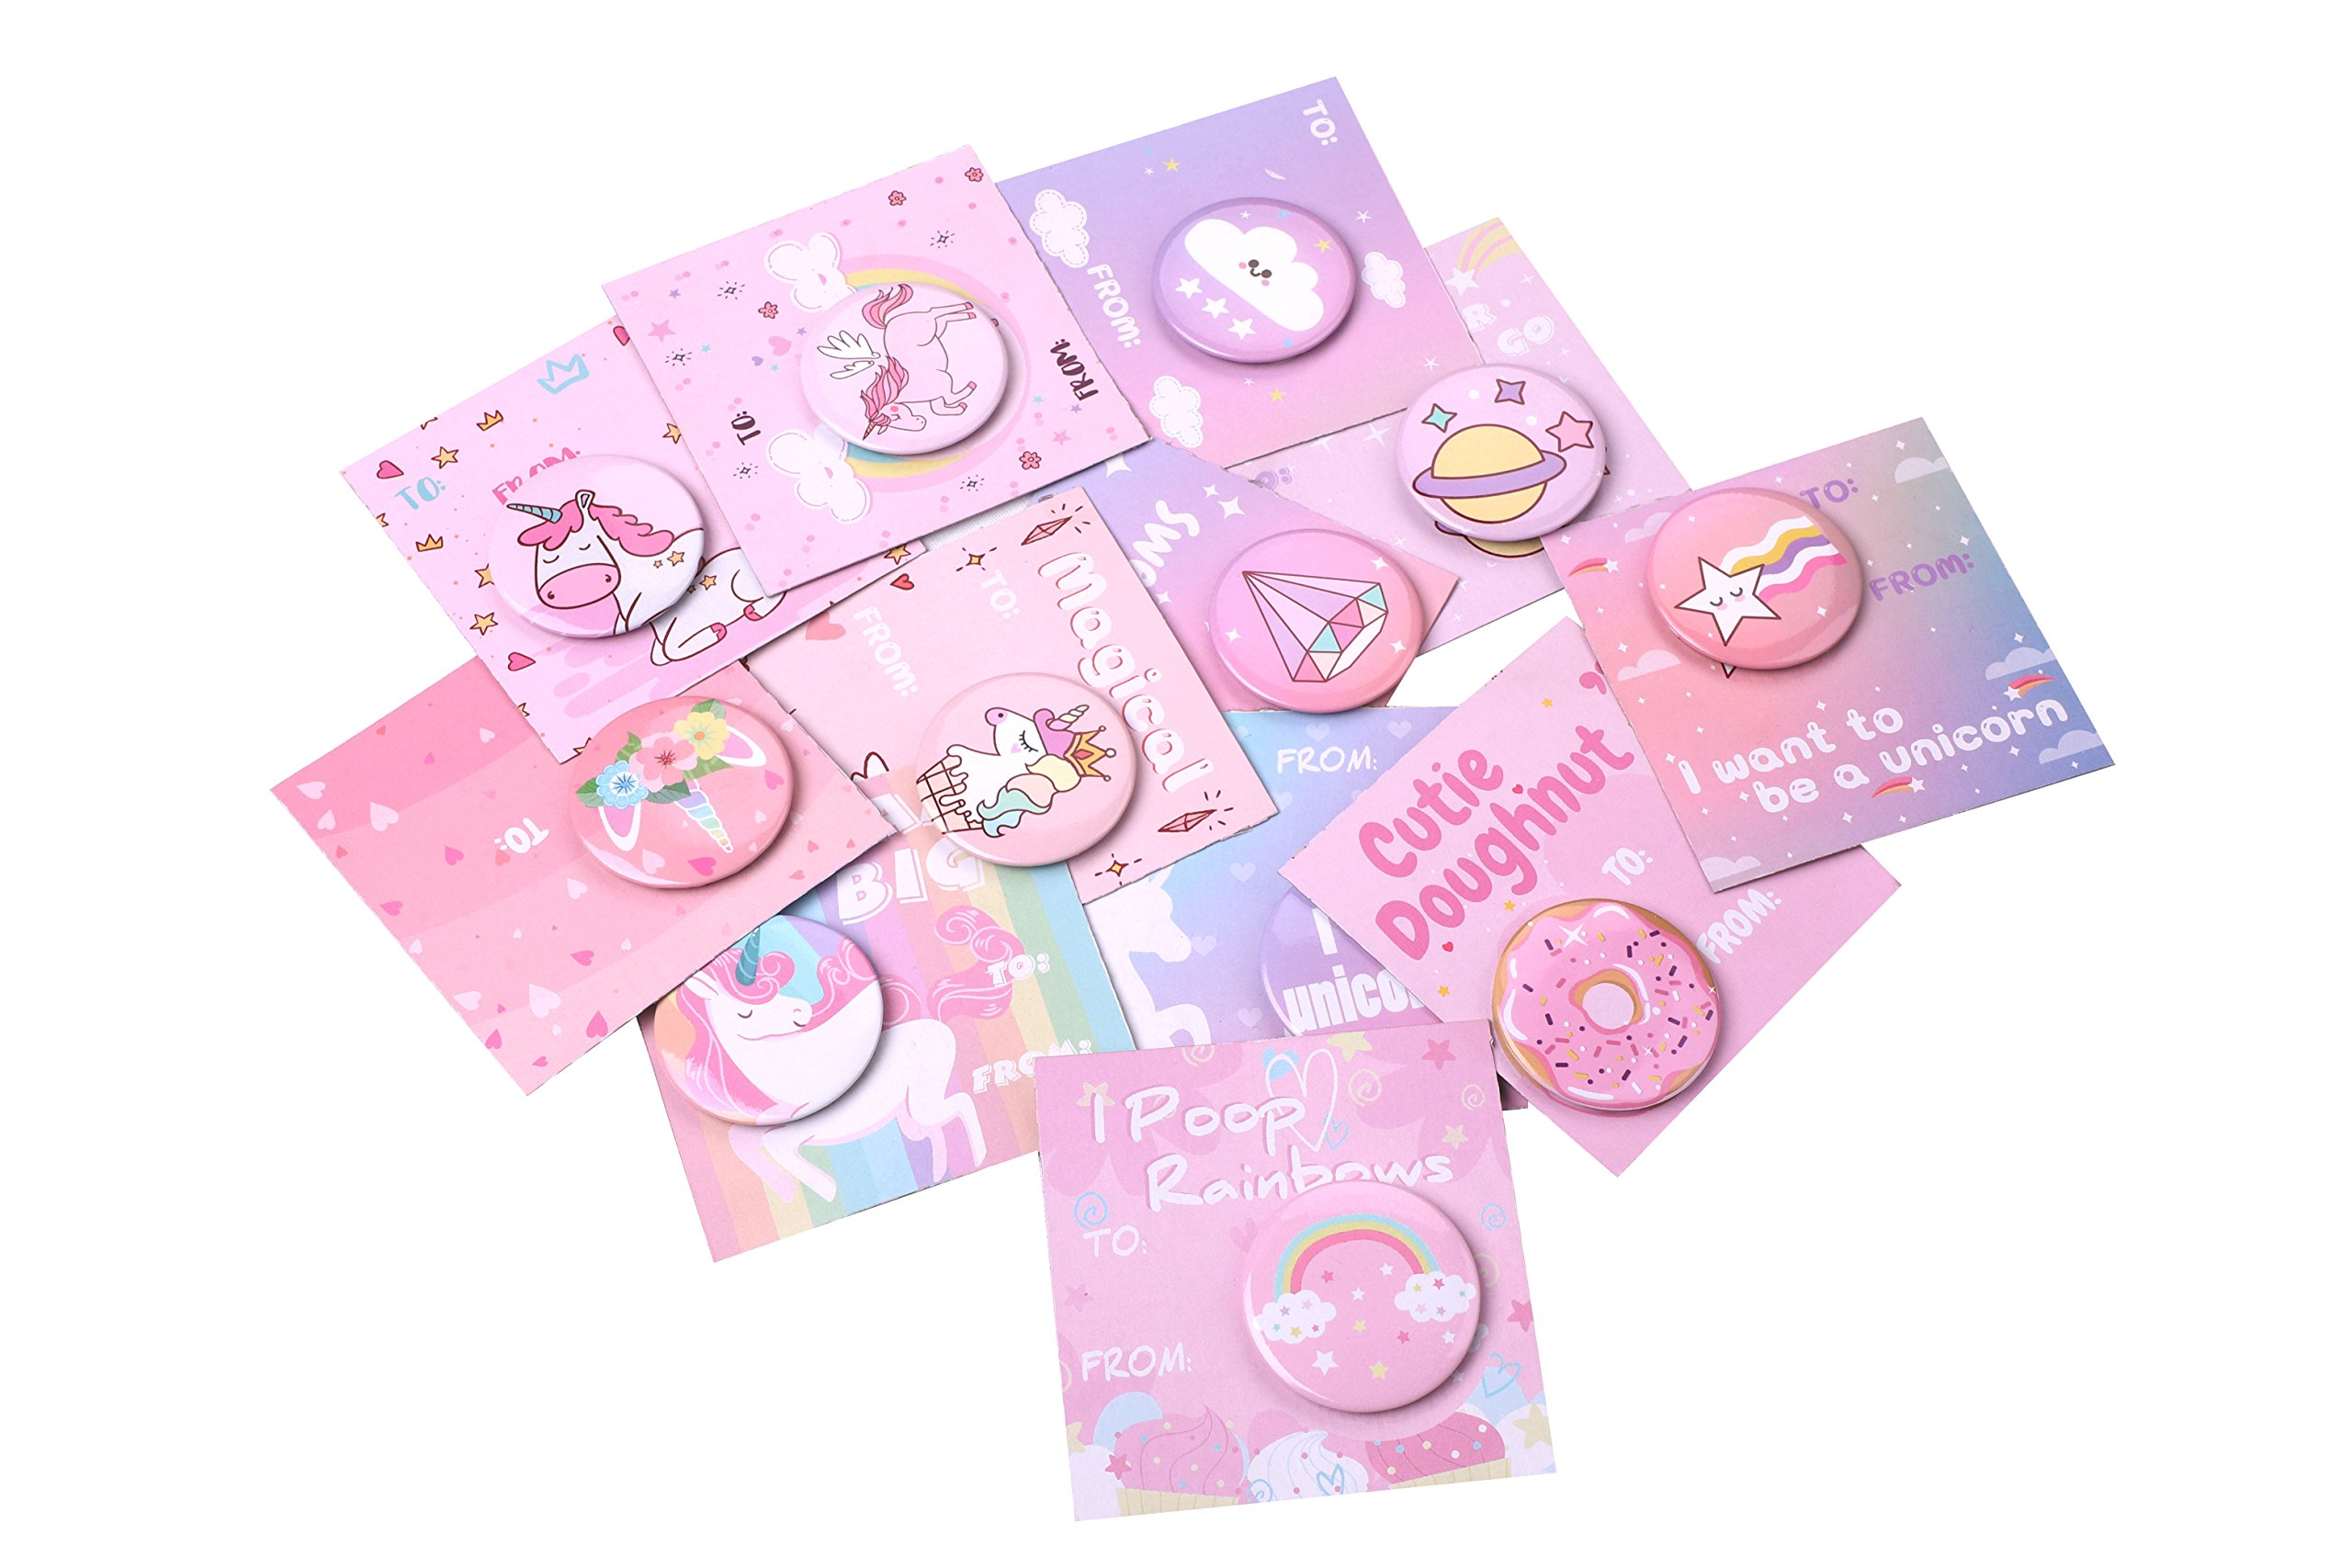 Geefuun Unicorn Pins Valentine's Day/Birthday Party Favors Decorations Girl Gift Badges Magical Rainbow Cards Supplies 7